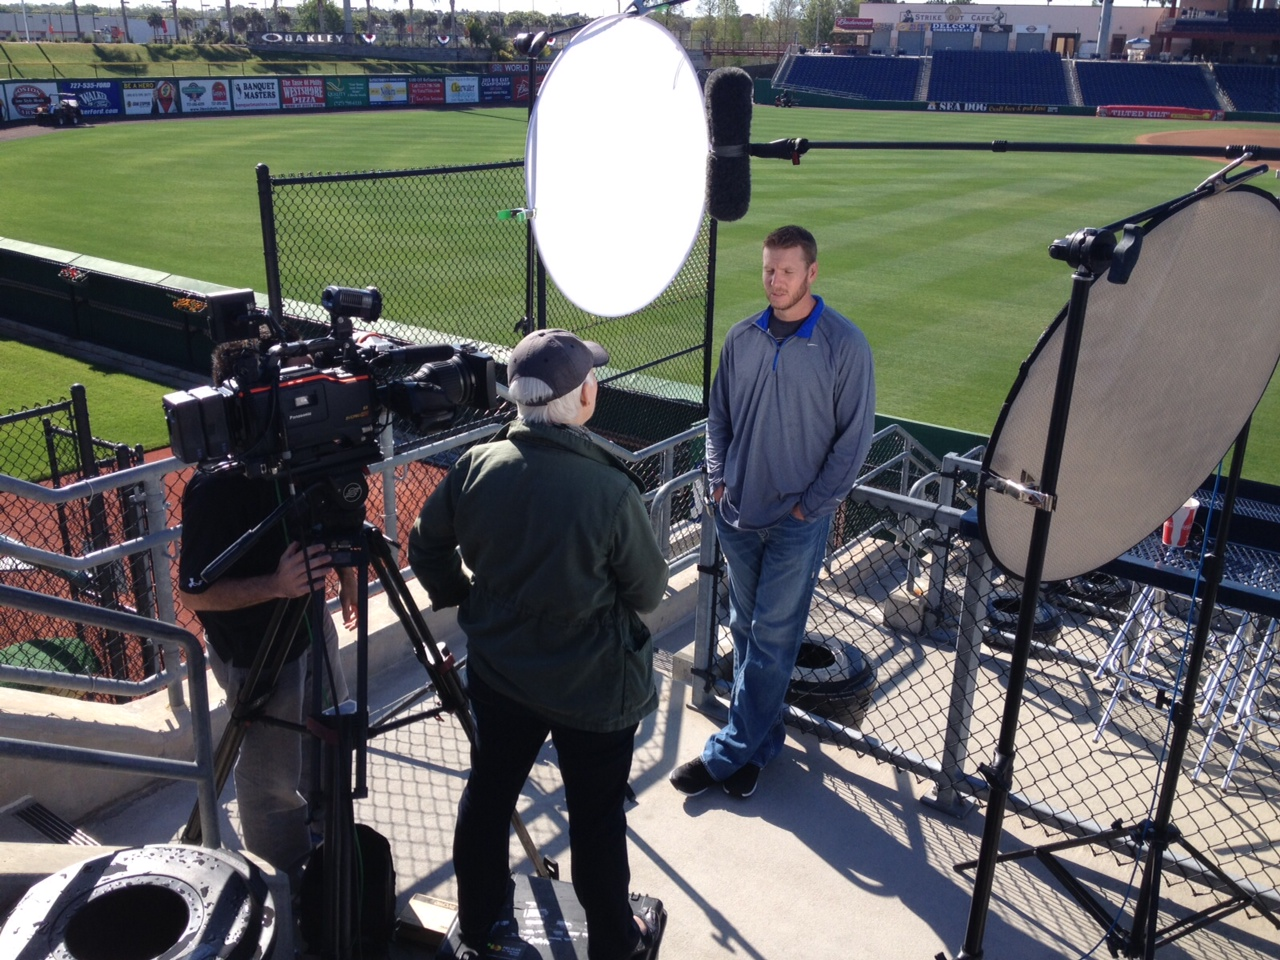 halladay interview Atlanta Crew heads down to Florida for Spring Training and Fast Cars